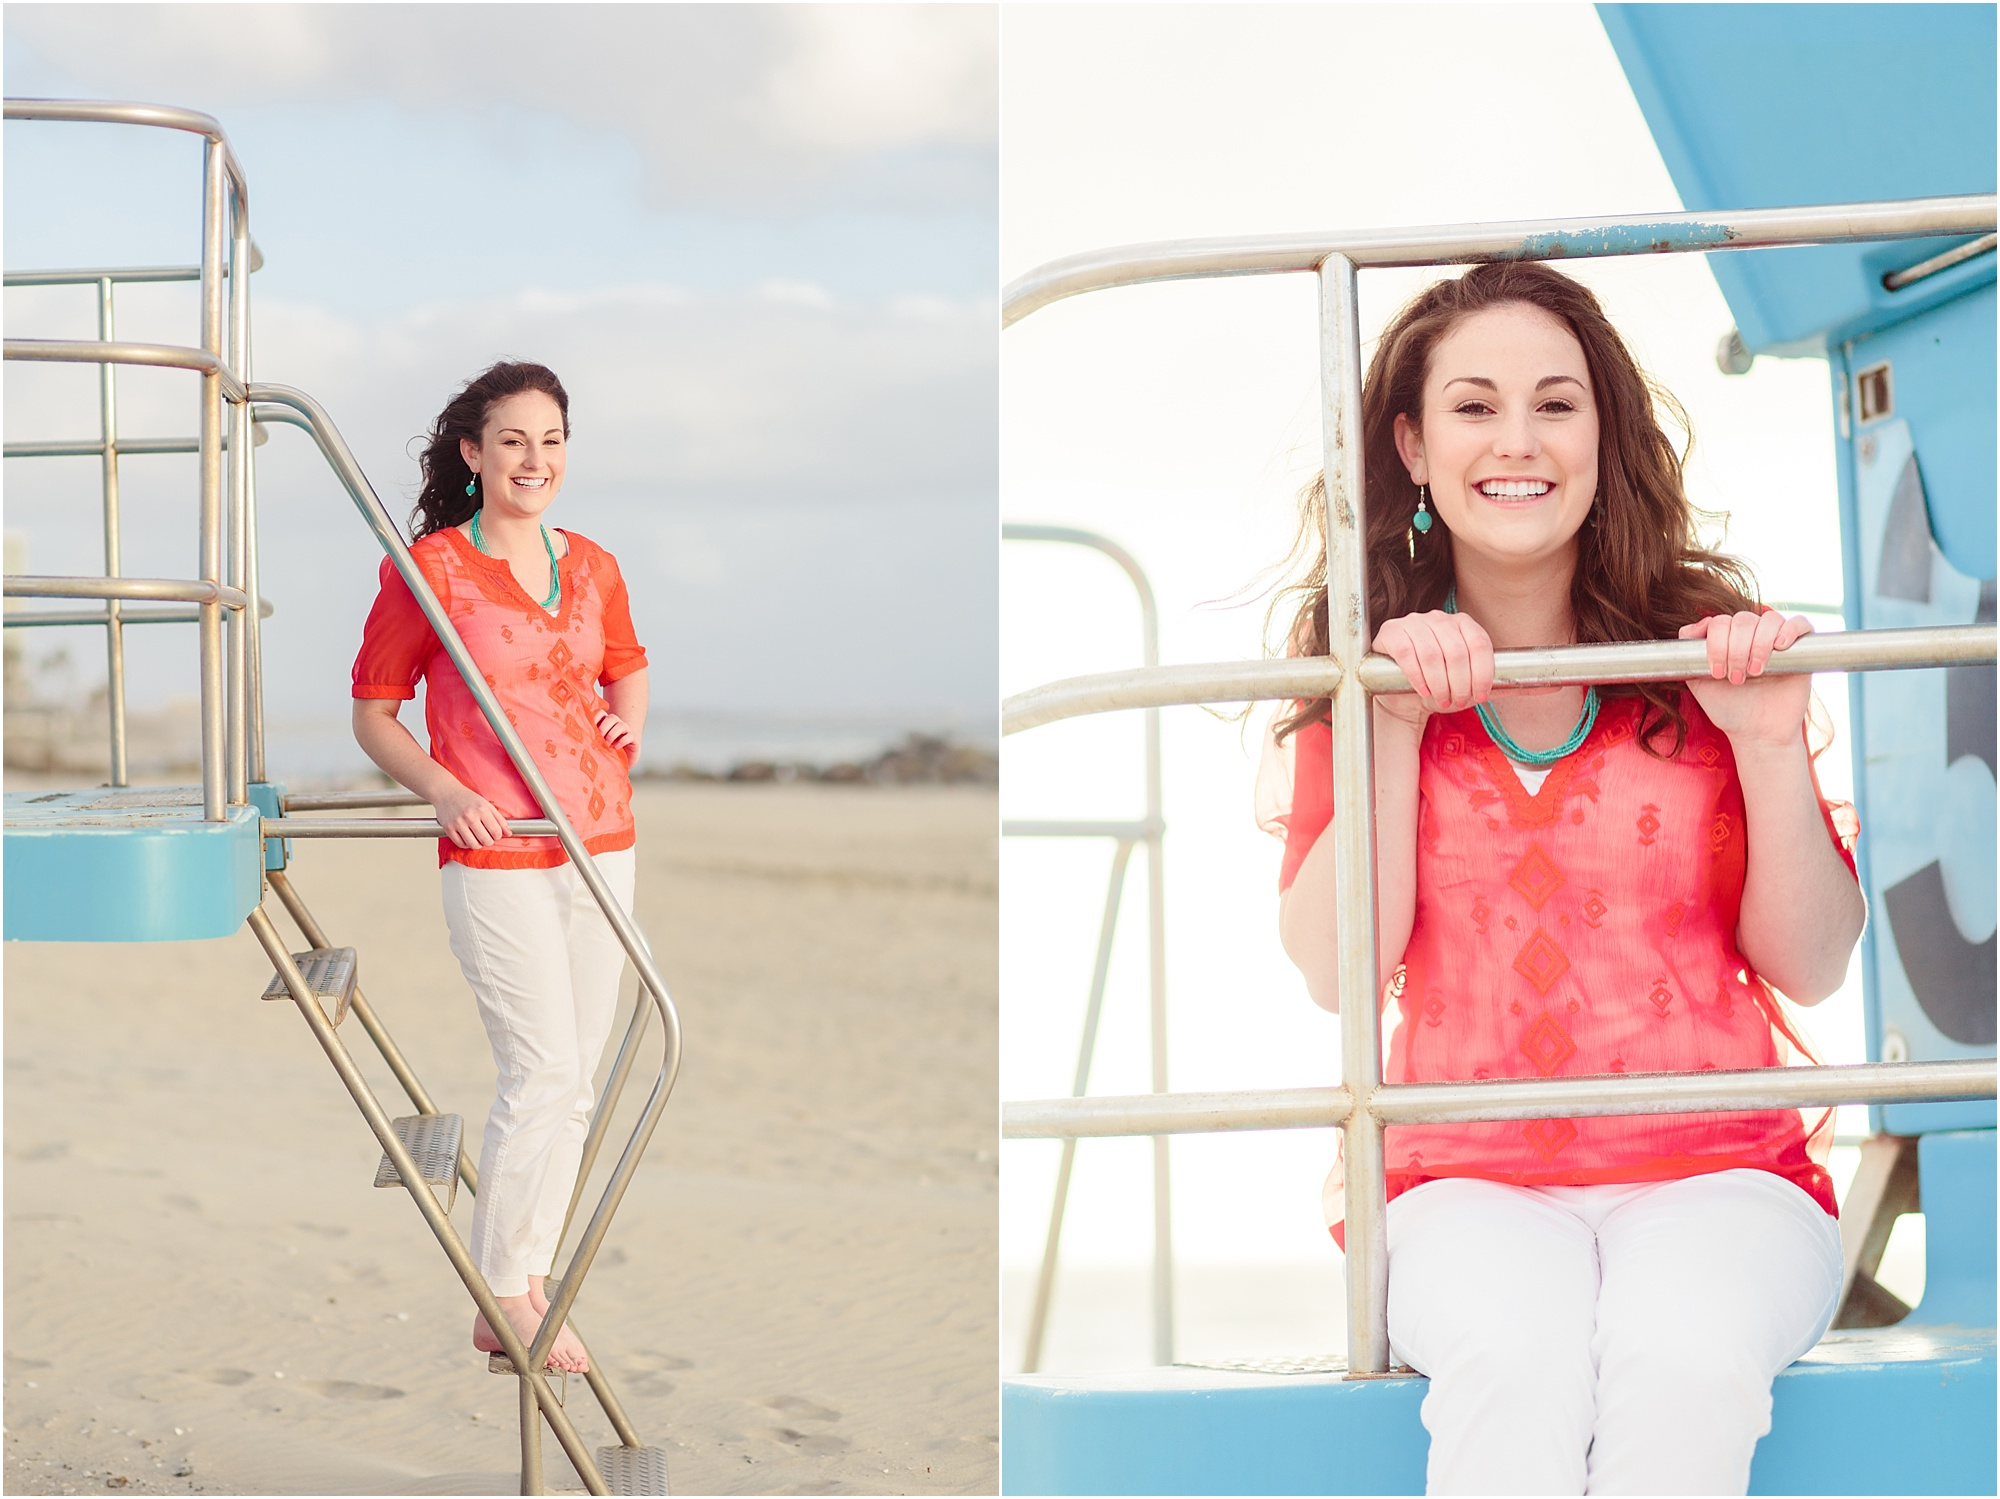 San Diego Beach Photography | Senior Portraits